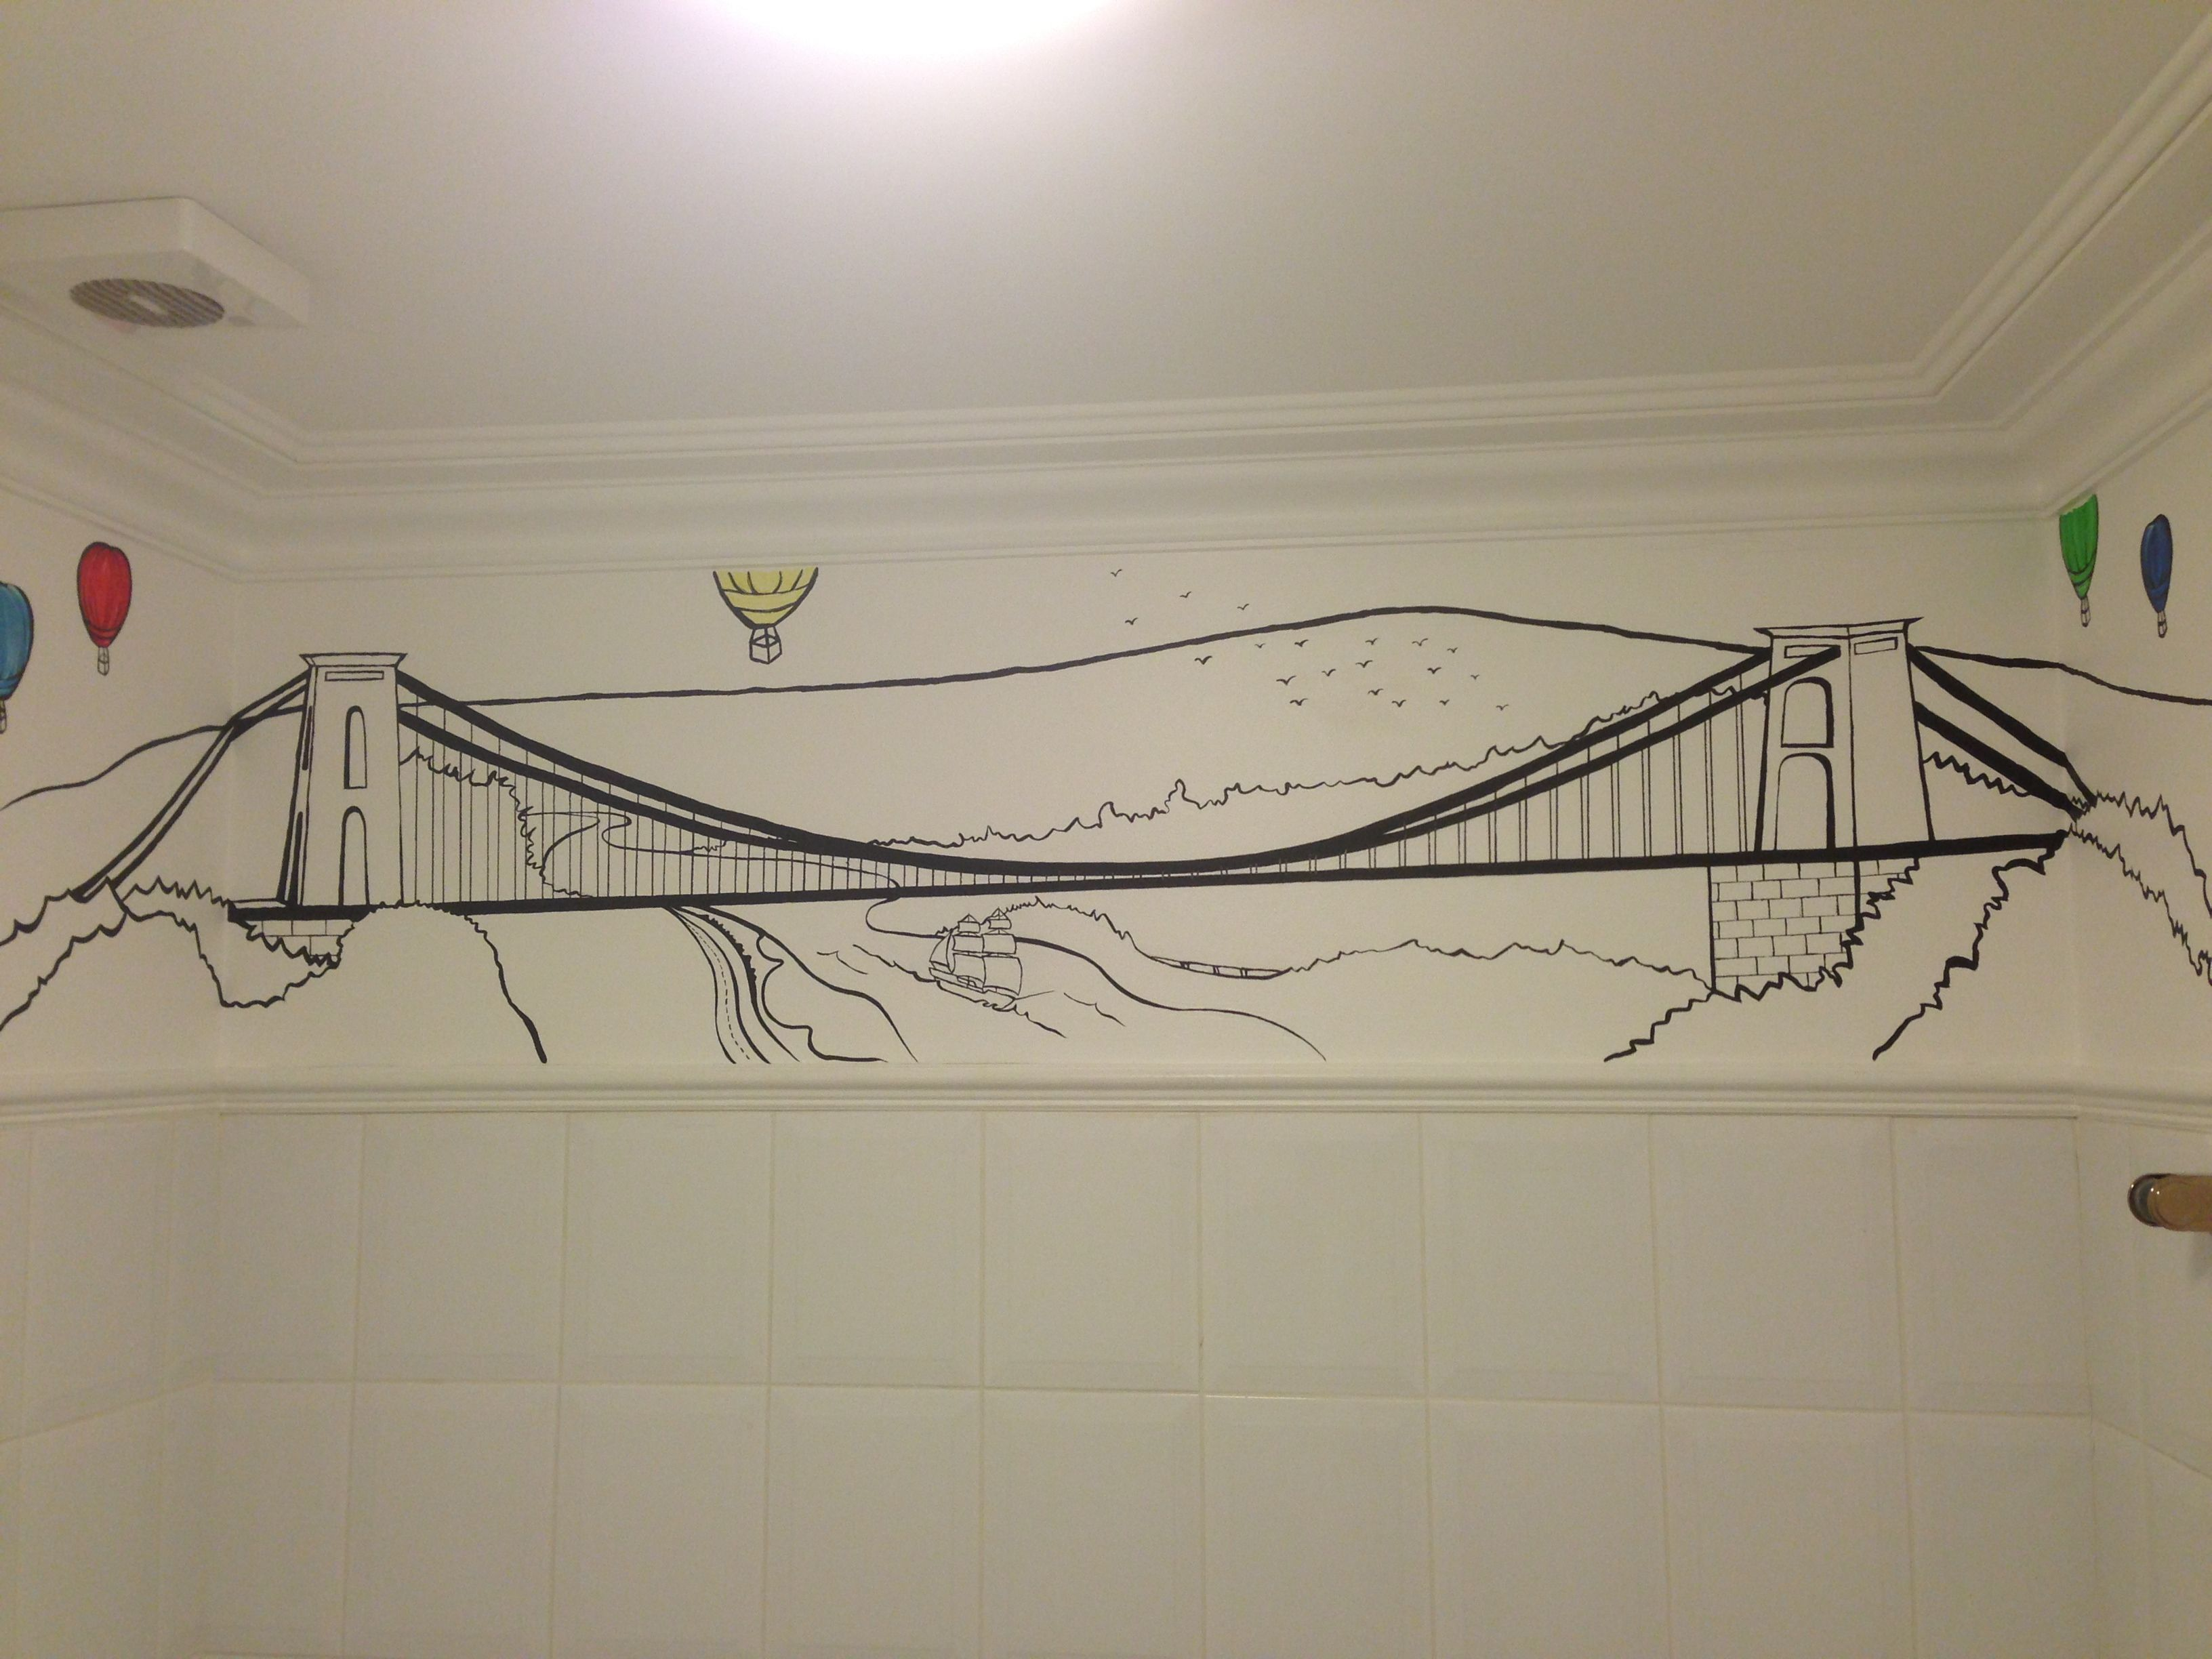 Wall Art Clifton Suspension Bridge Painting Diy Crafts